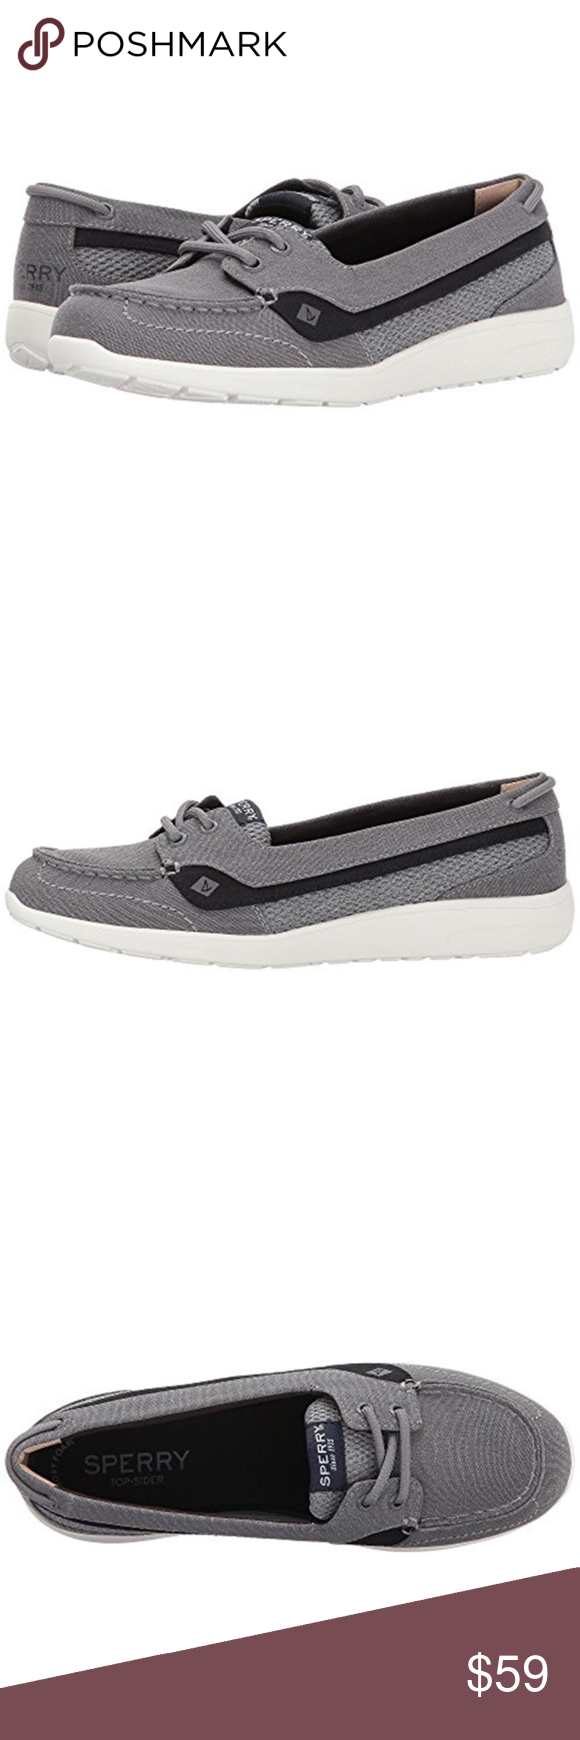 Women's Sperry Rio Point Boat Shoes pick a best online nicekicks for sale quality from china cheap DbgG0VsBZ